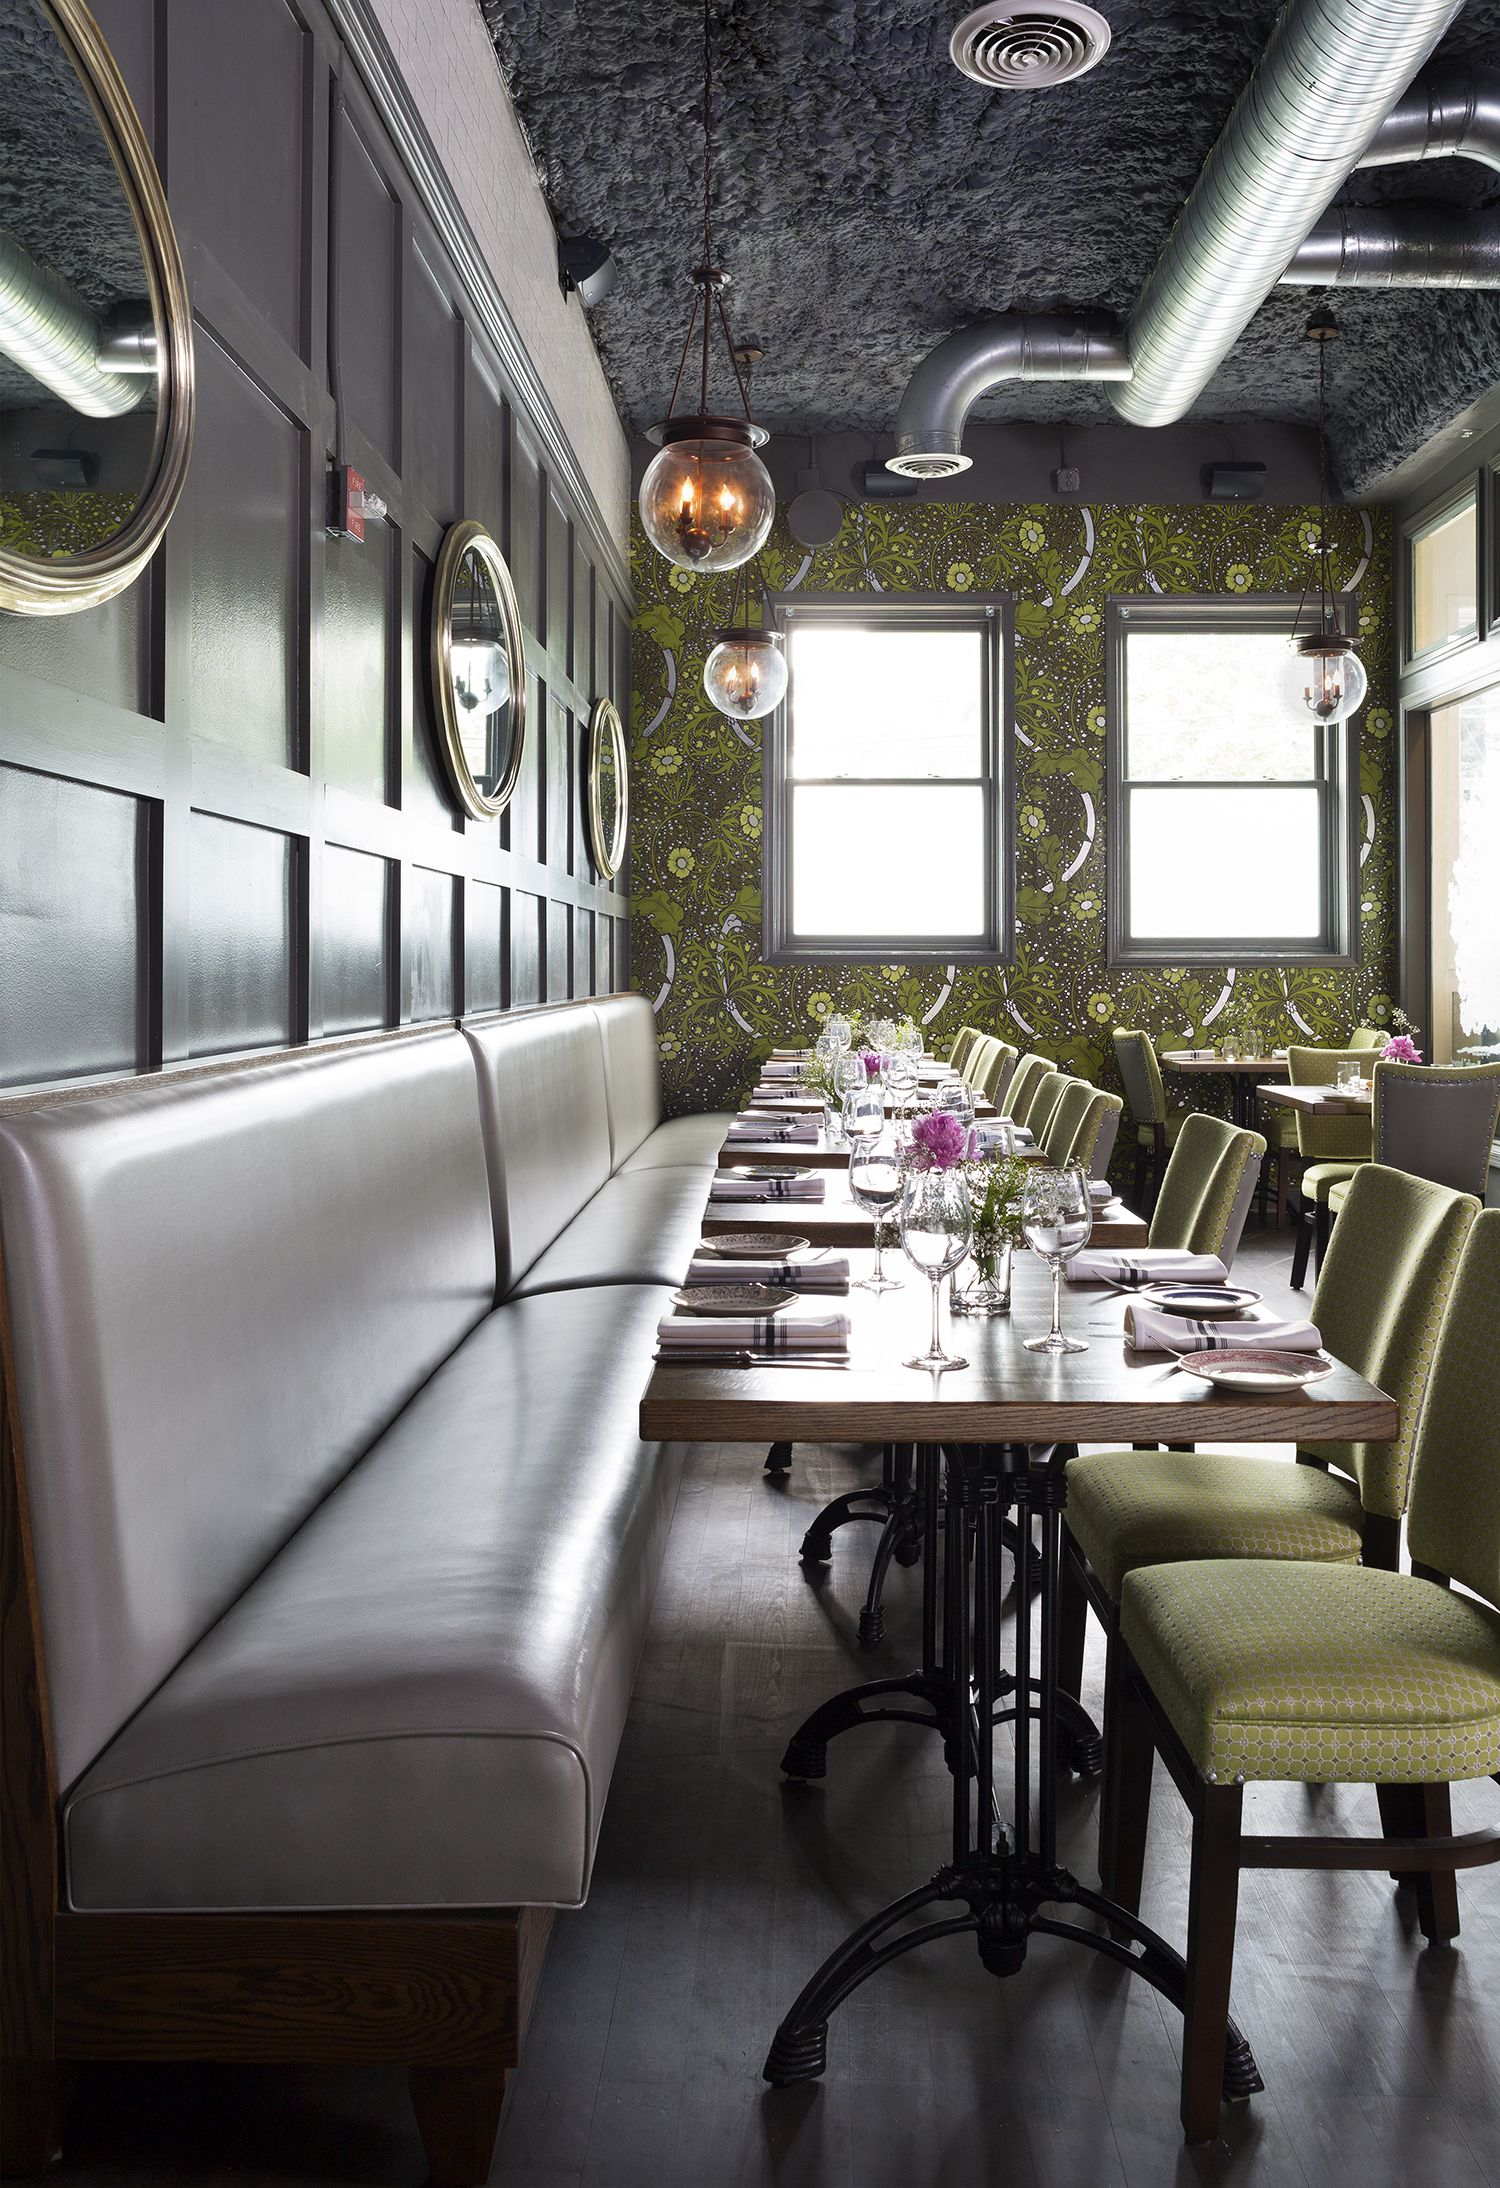 Magnolia Room Is A Gorgeous Restaurant Located In The Chevy